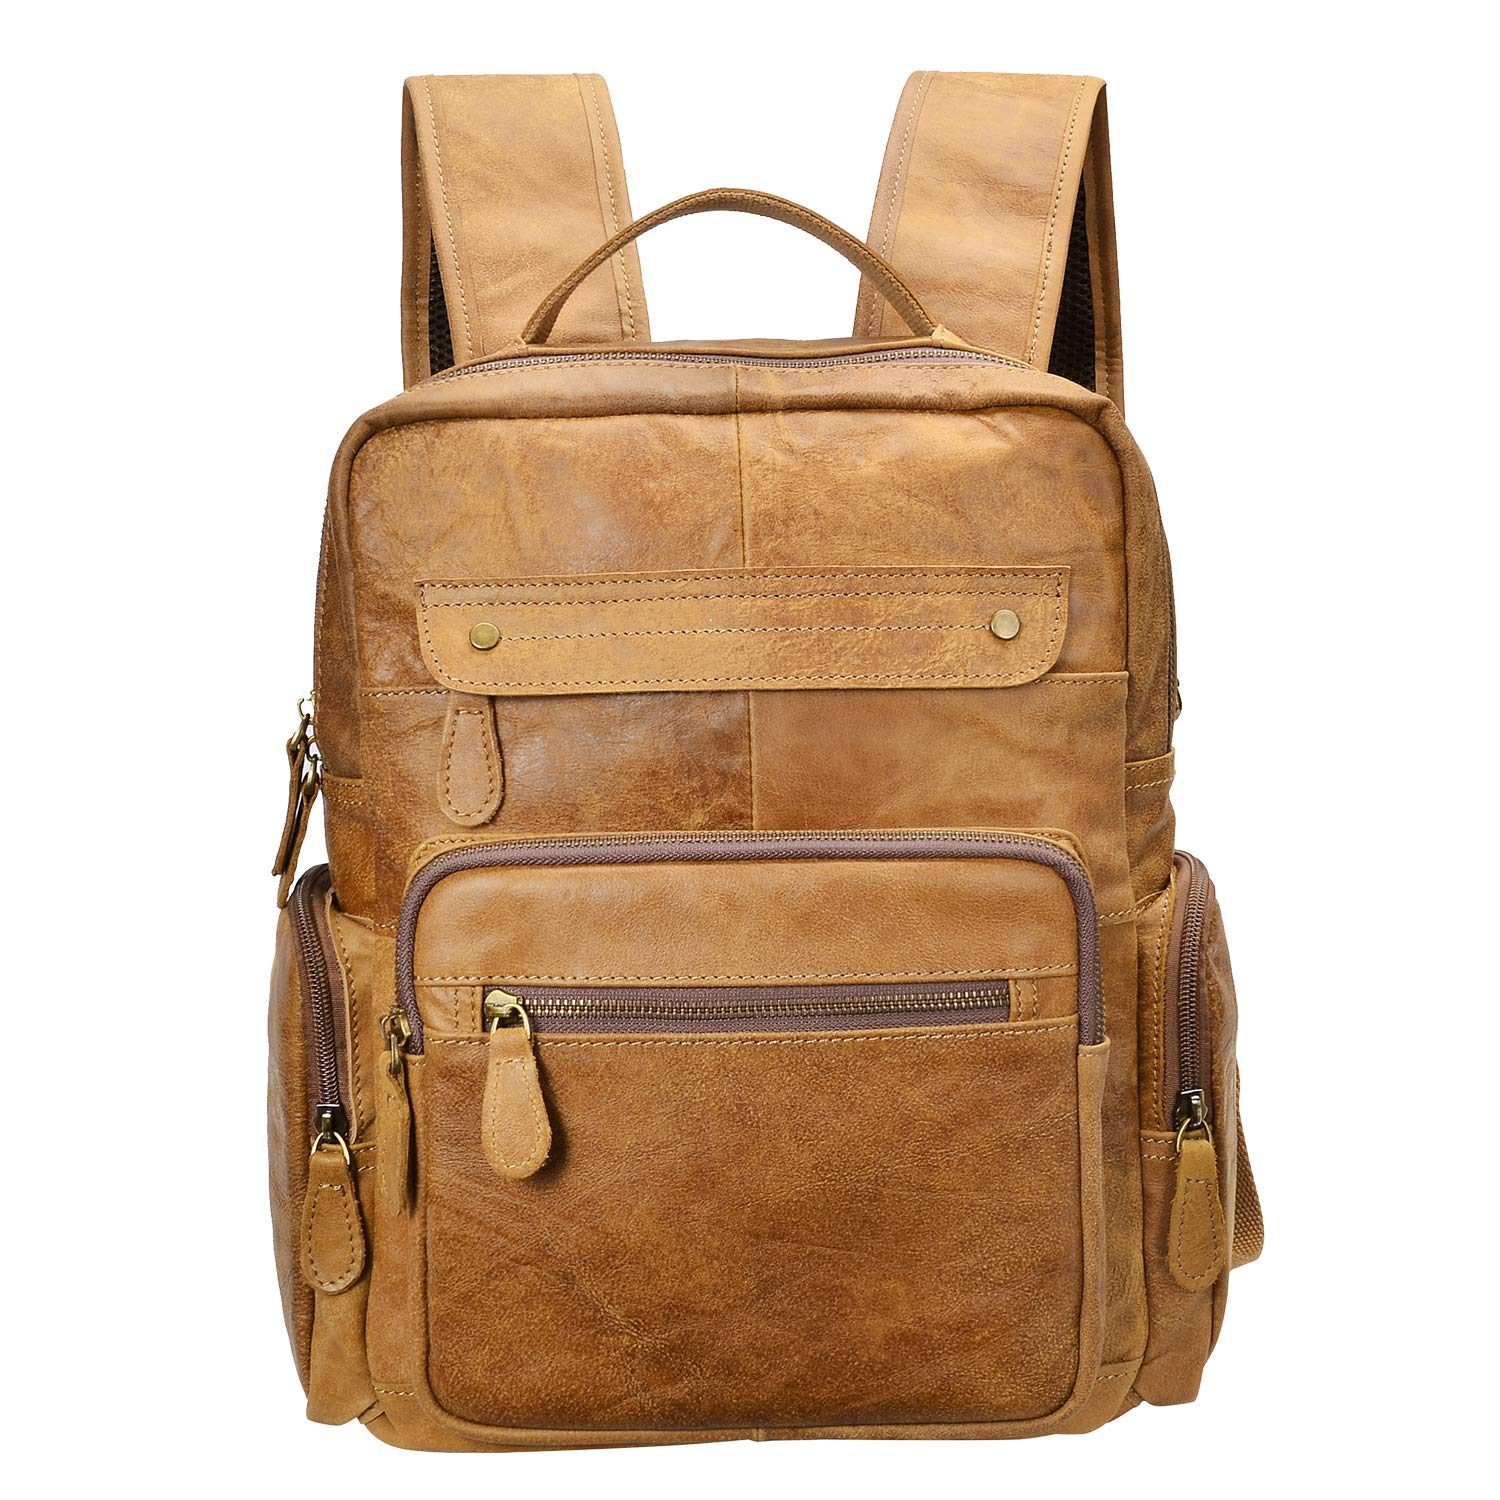 Mens Genuine Leather Backpack Fit 14 Laptop Brown Cowhide Large School Bags Large Vintage Leather Travel Rucksack Fast Post To Be Distributed All Over The World Kids & Baby's Bags